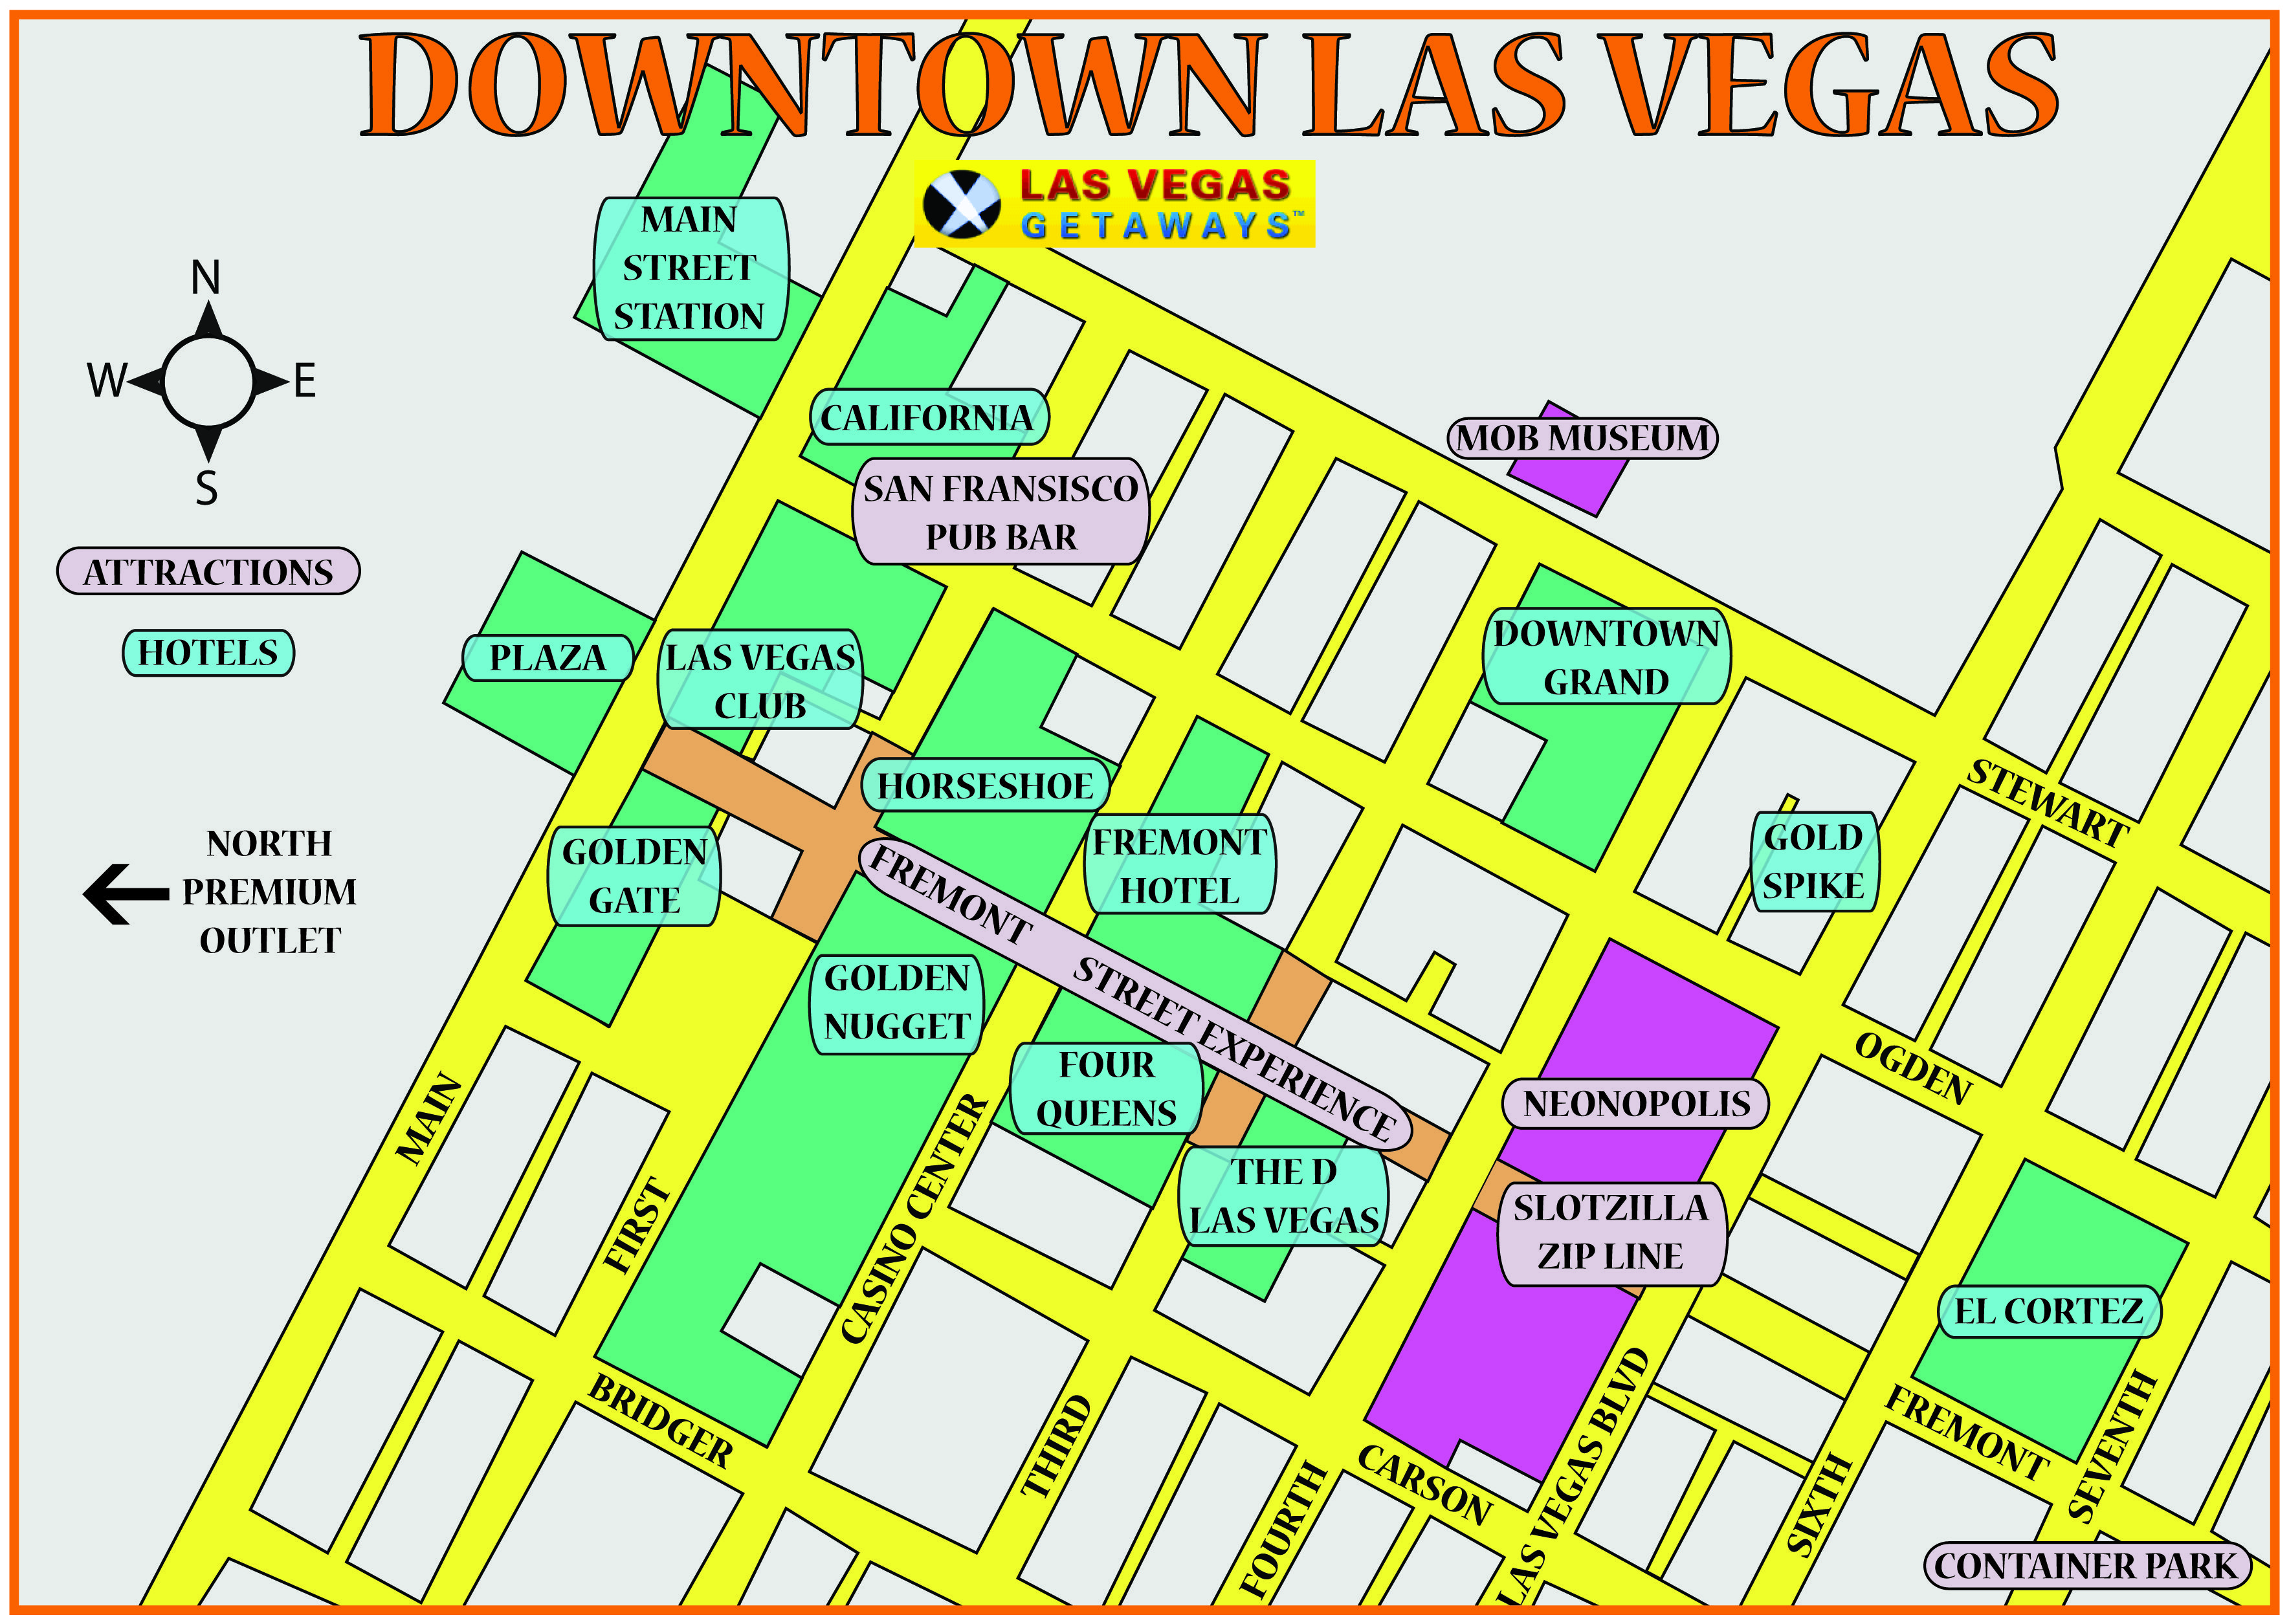 Downtown Las Vegas Map Las Vegas Getaways Pinterest Vegas and